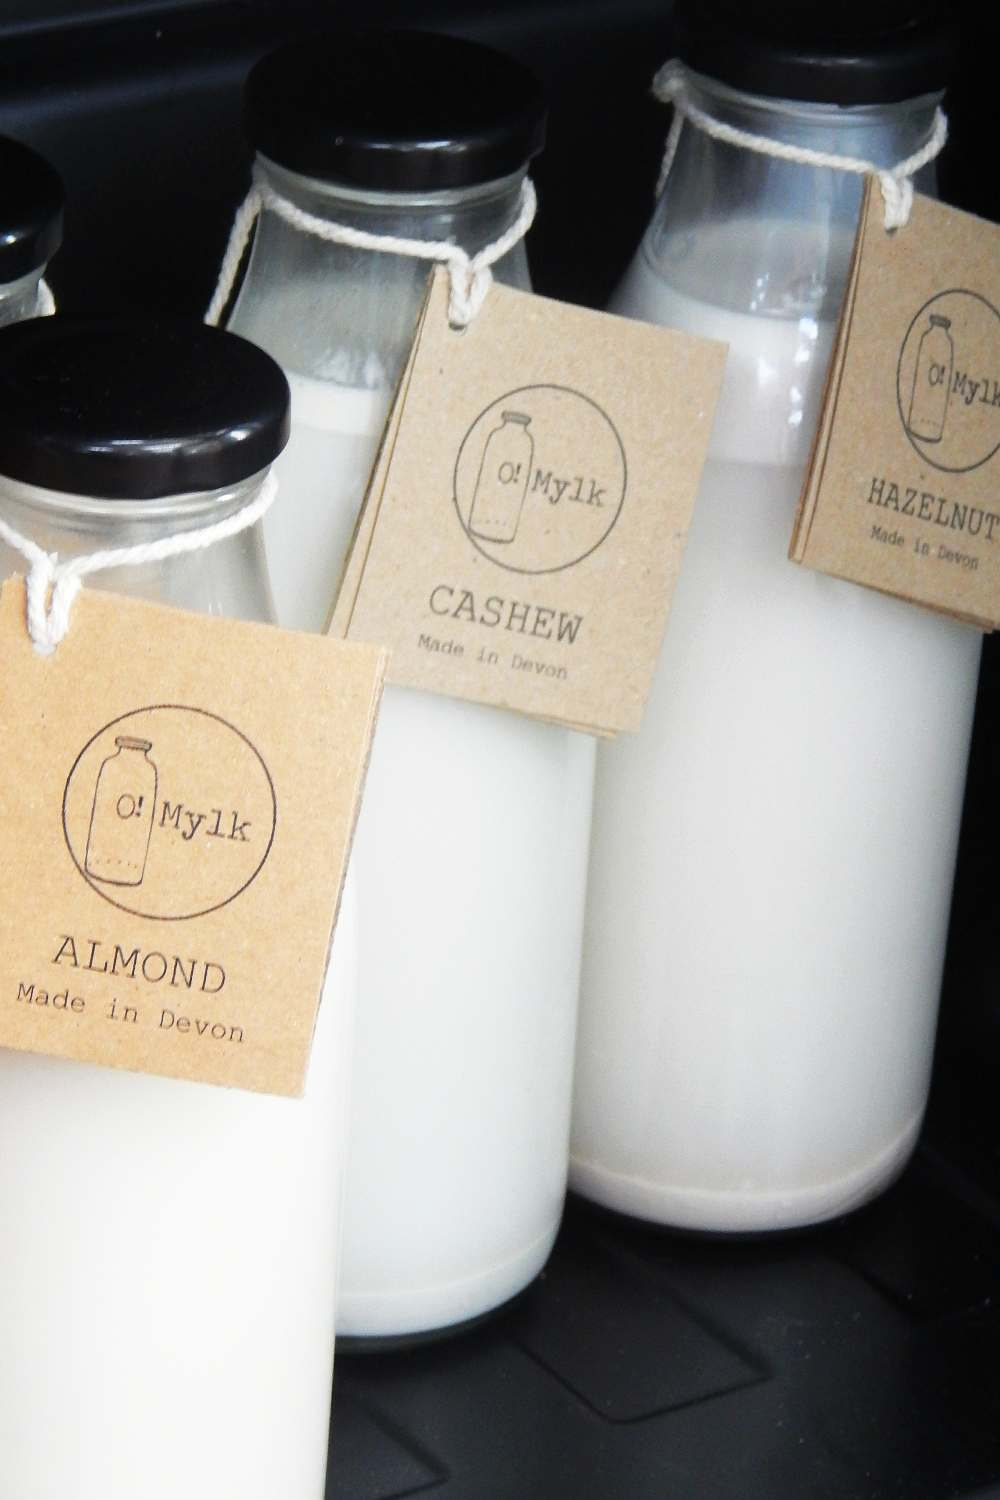 Nut milks in glass jars with cardboard labels tied with string